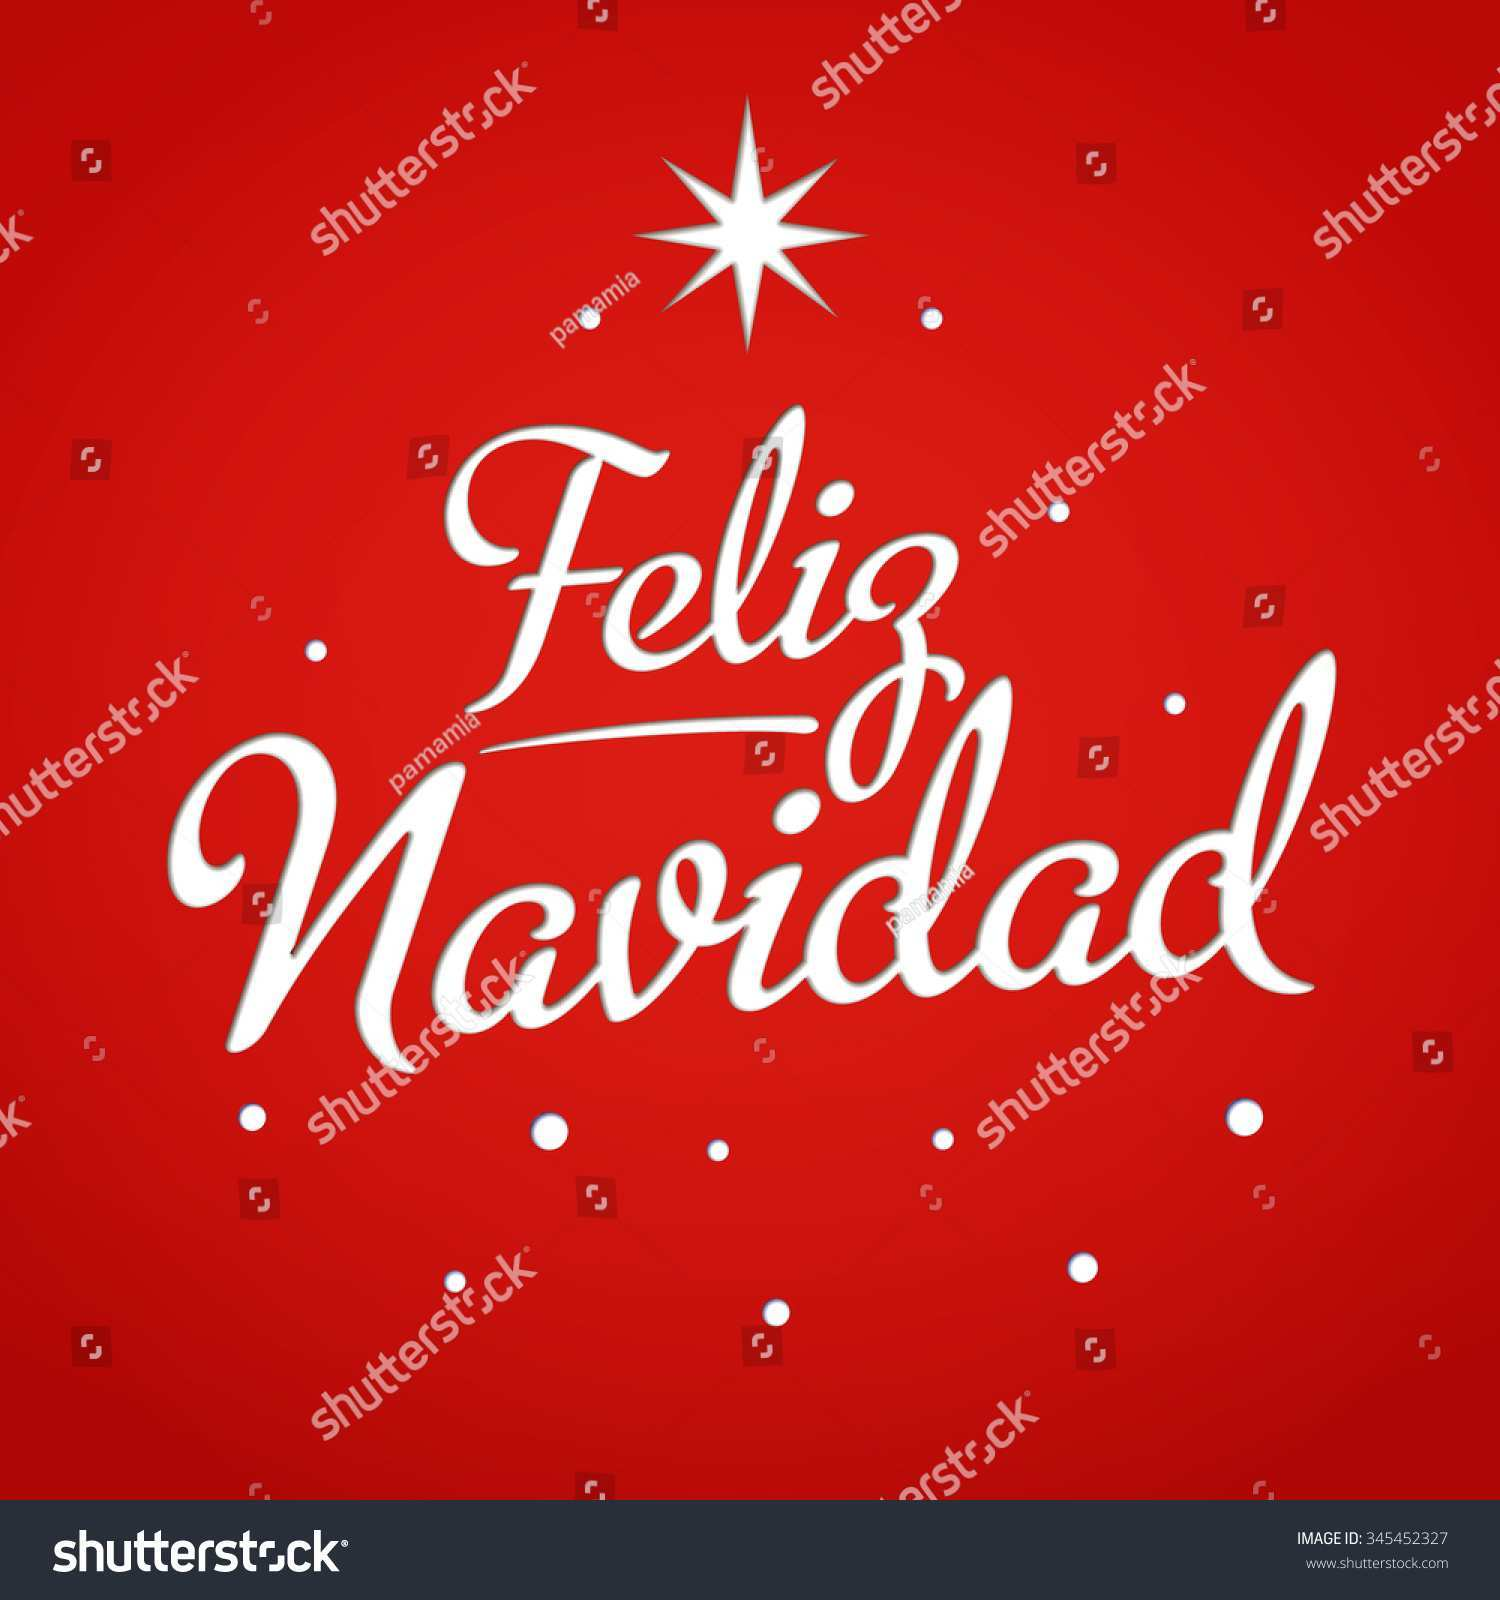 38 Create Christmas Card Templates In Spanish in Word by Christmas Card Templates In Spanish